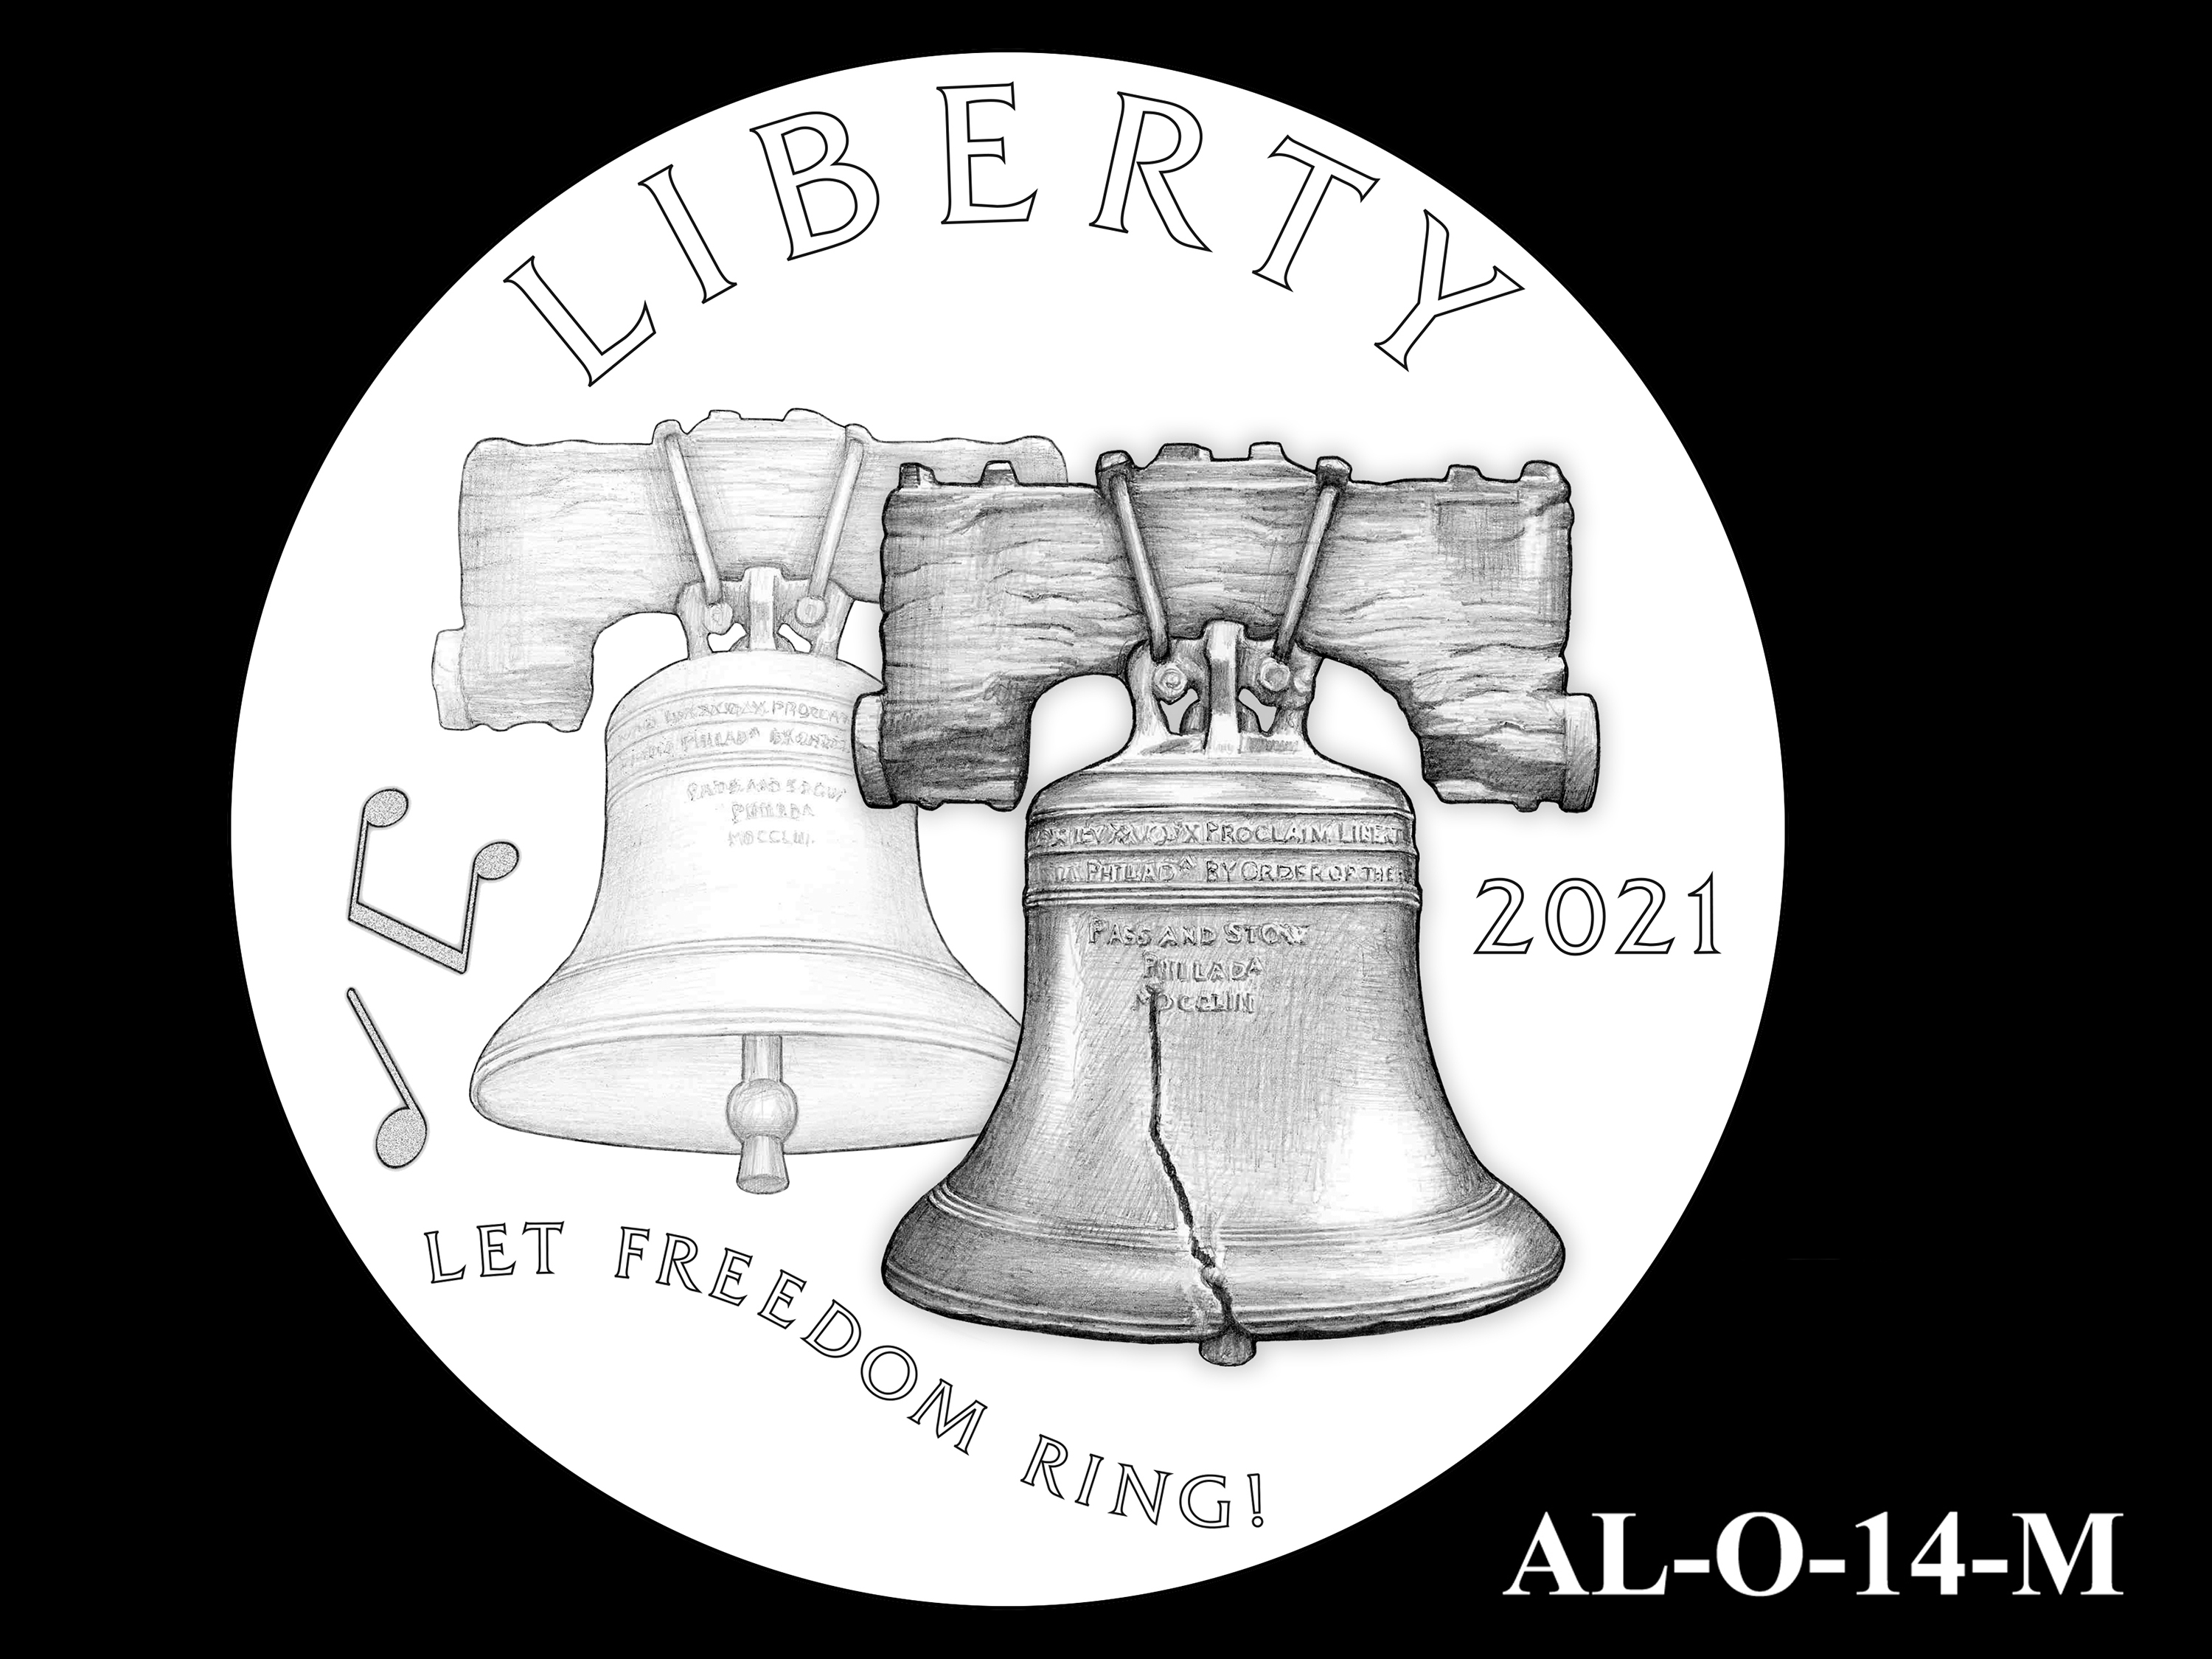 AL-O-14-M -- 2021 American Liberty Gold Coin and Silver Medal Program - Obverse